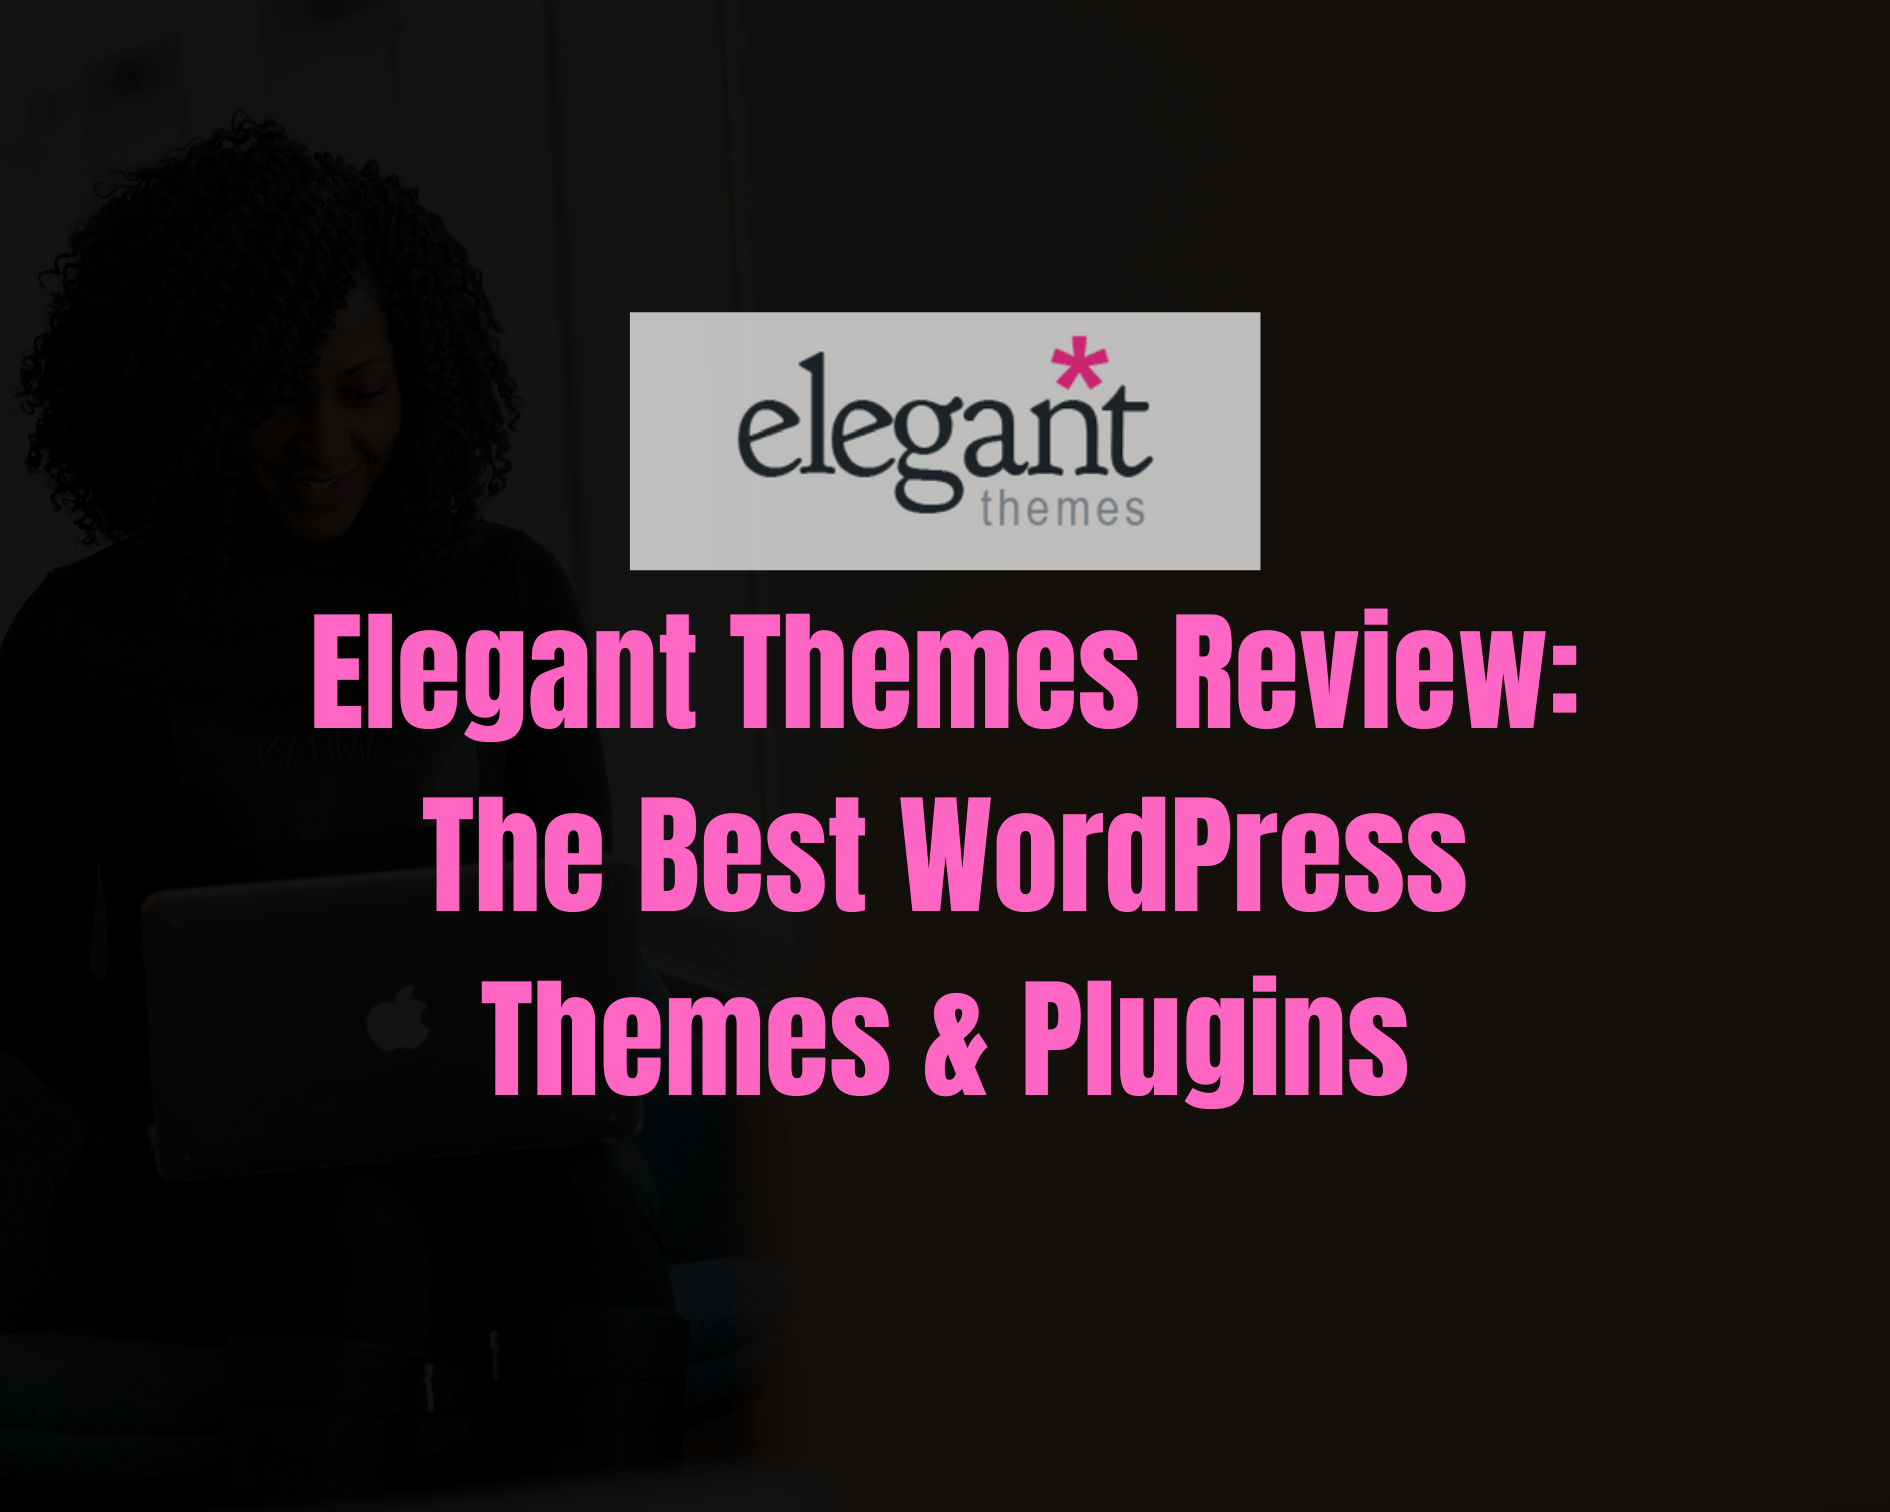 Explorable Theme Elegant Themes